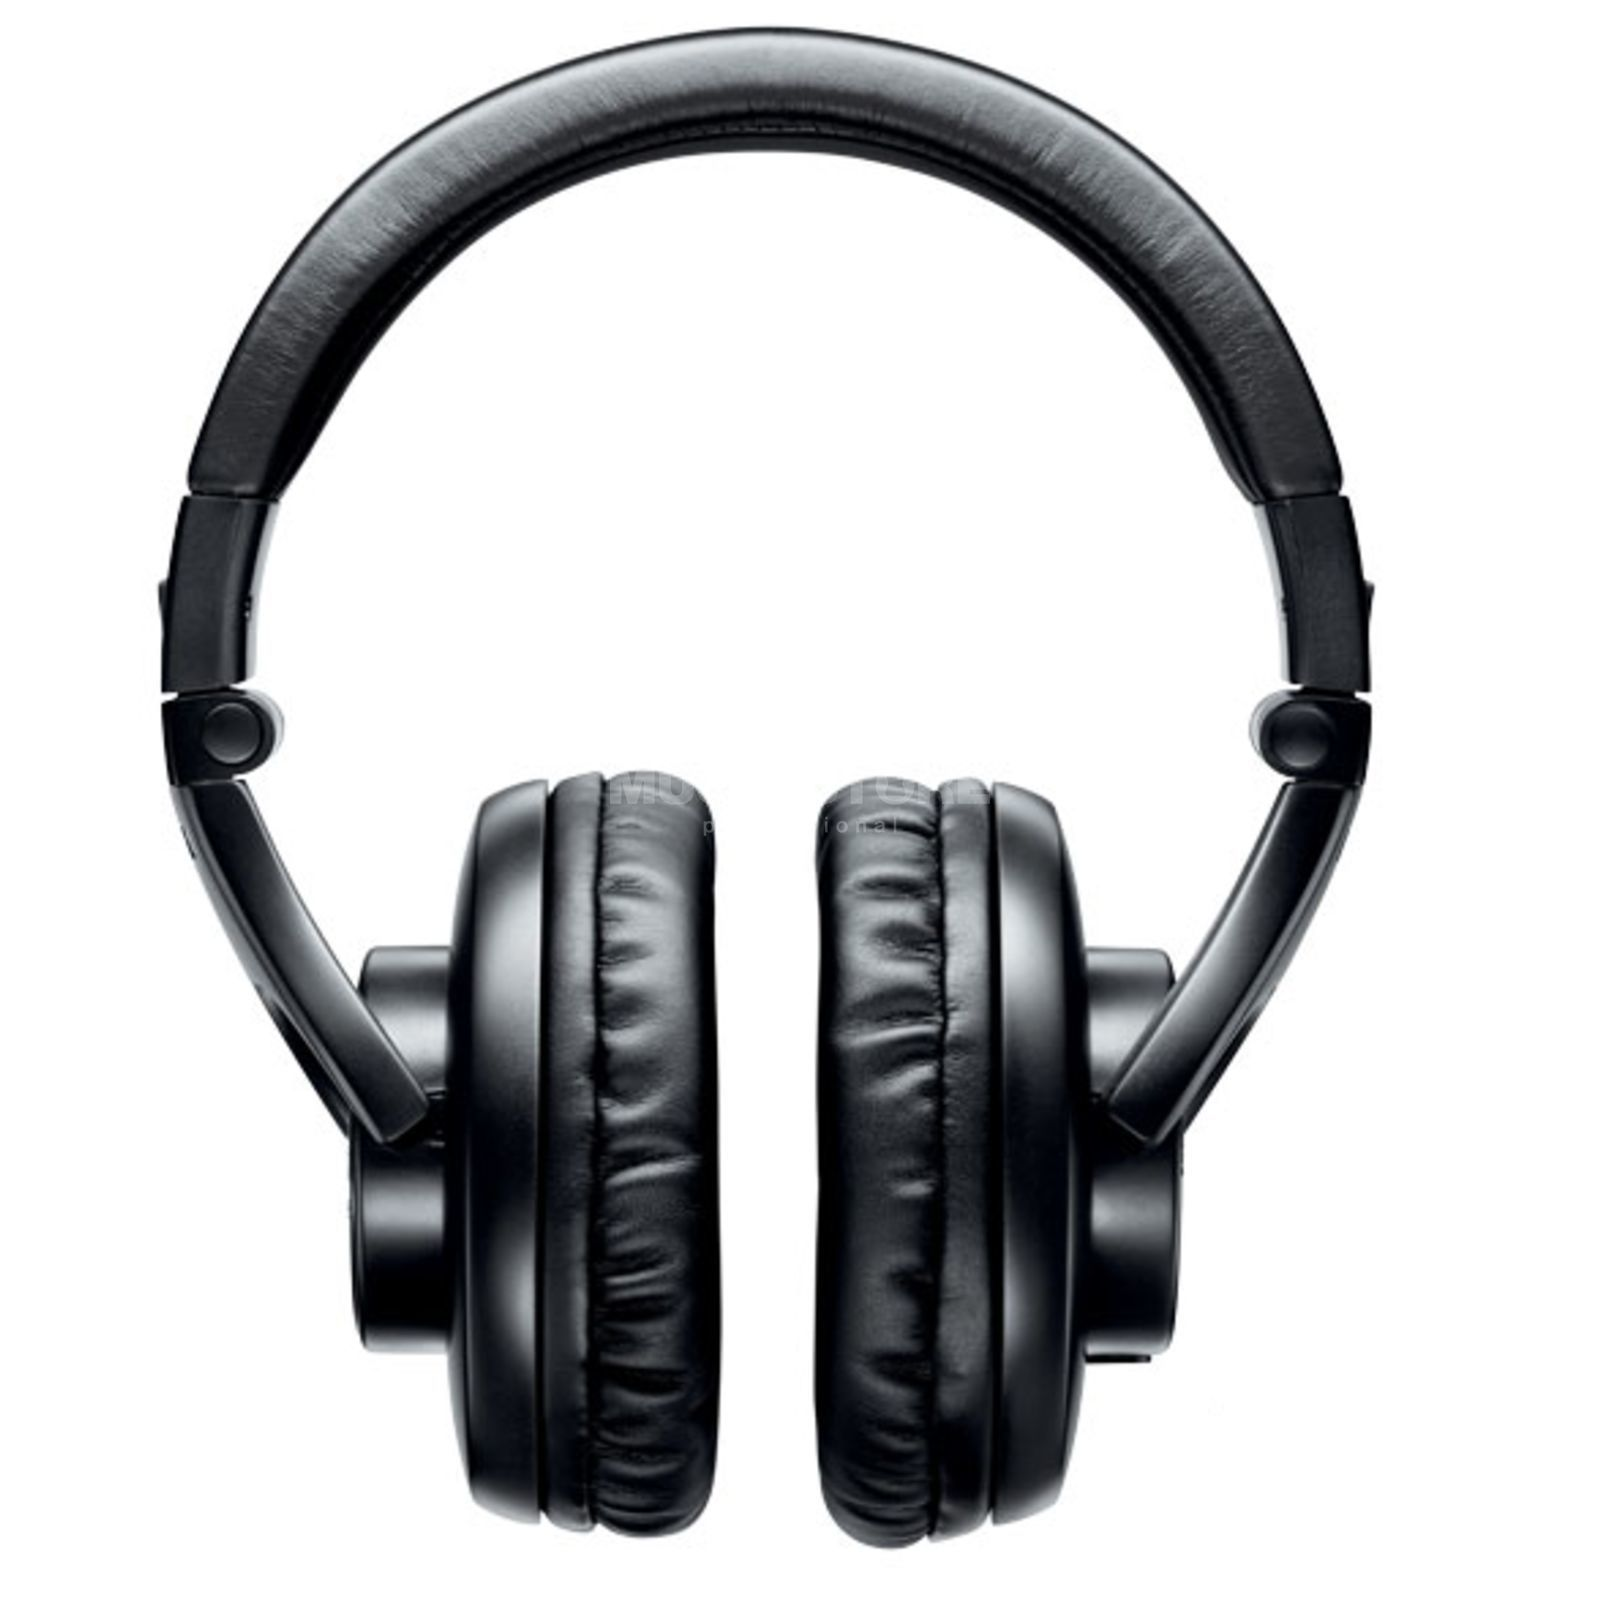 Shure SRH440 Professional Studio Headphones Изображение товара